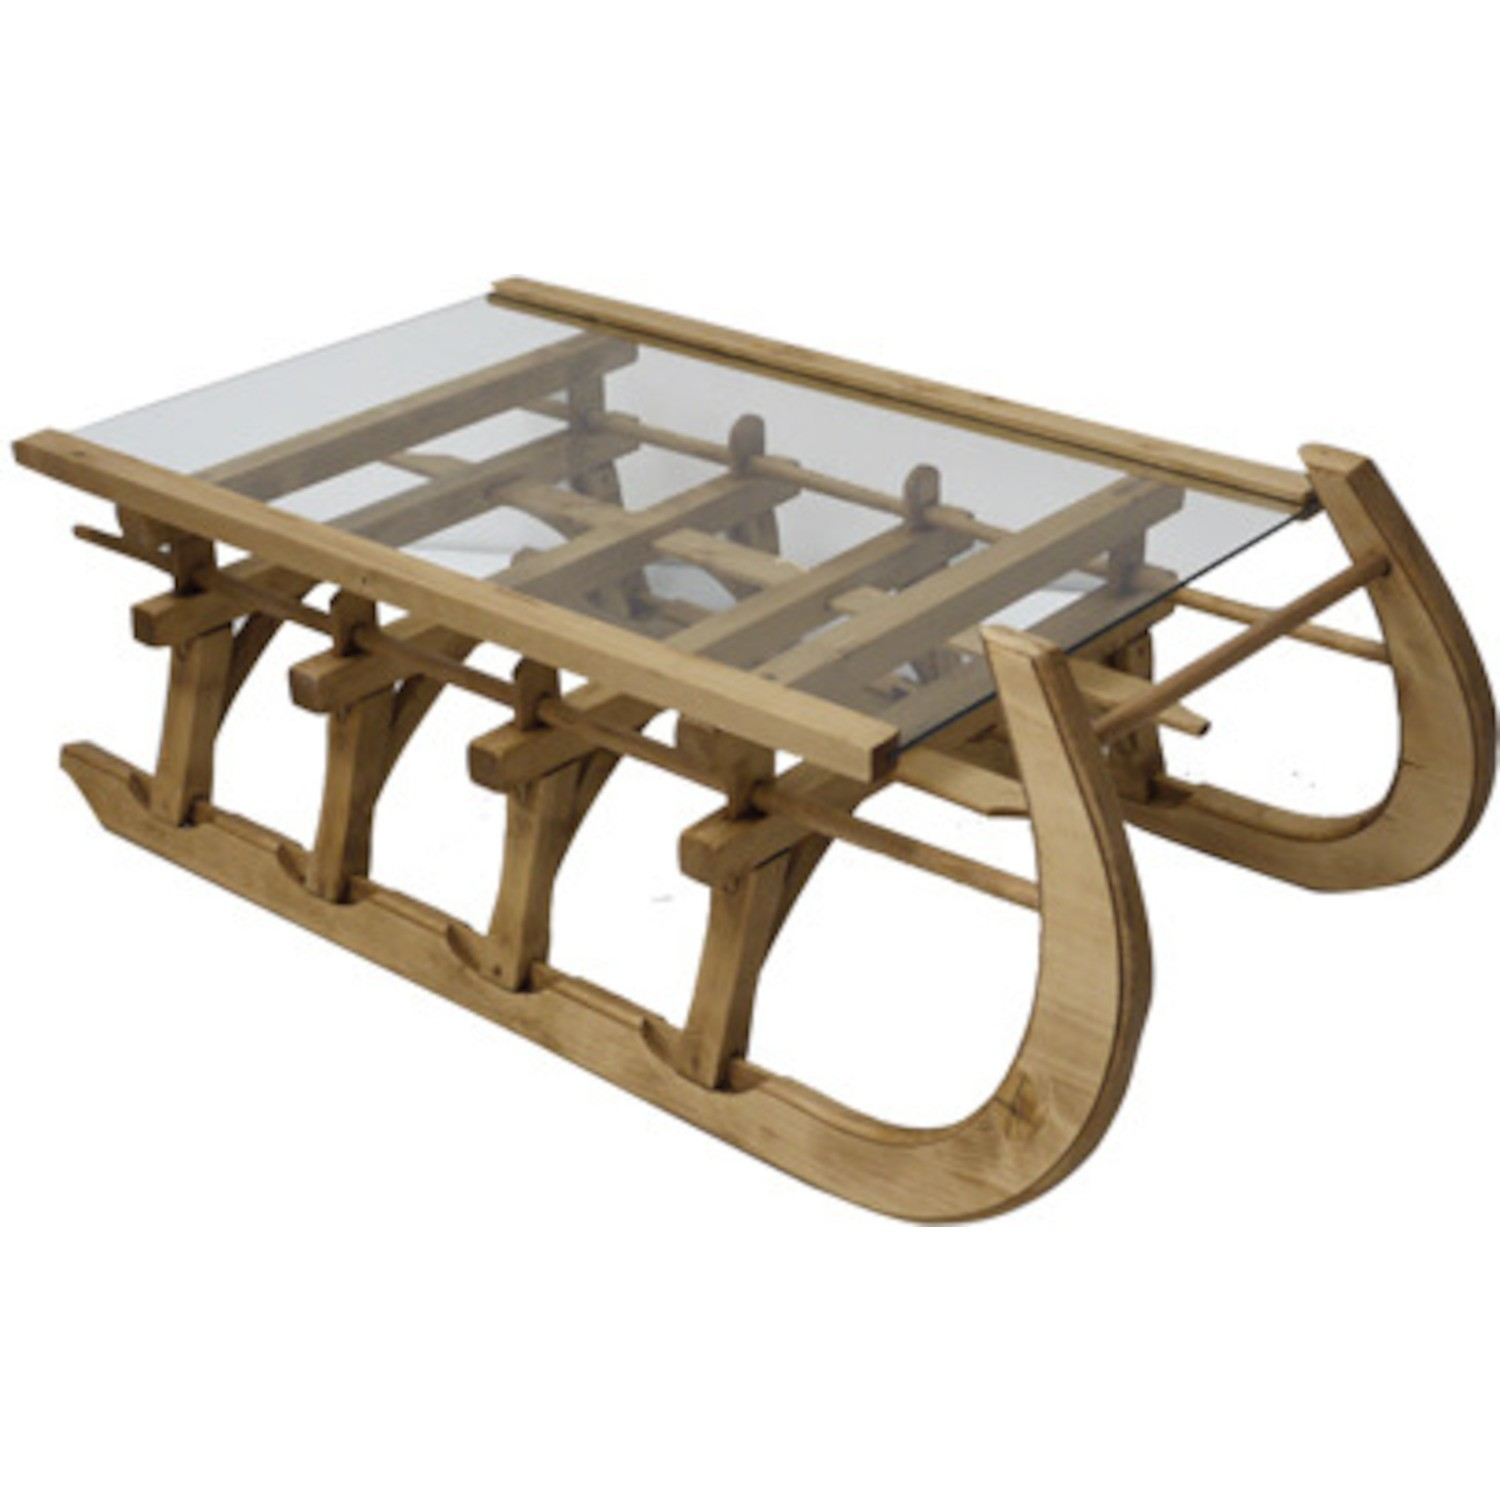 Table basse grande luge plateau verre cir - Table basse grande ...